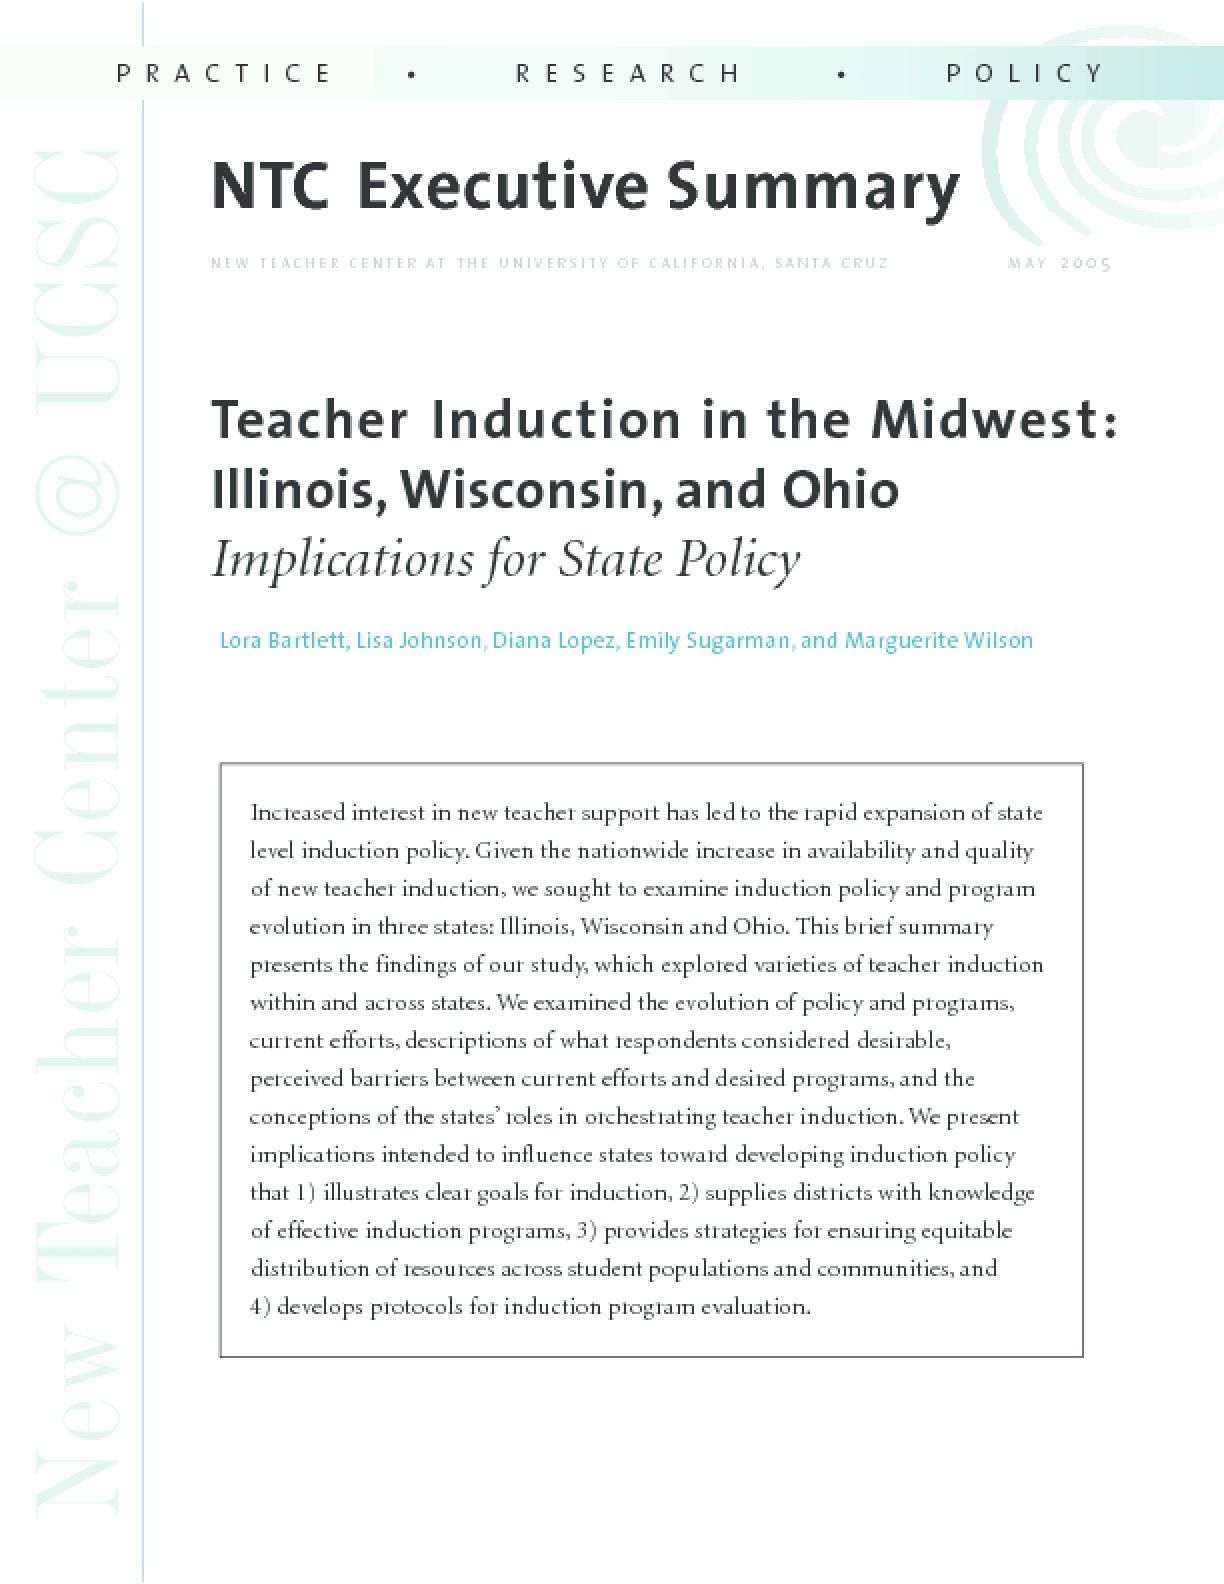 Teacher Induction in the Midwest: Illinois, Wisconsin, and Ohio: Implications for State Policy